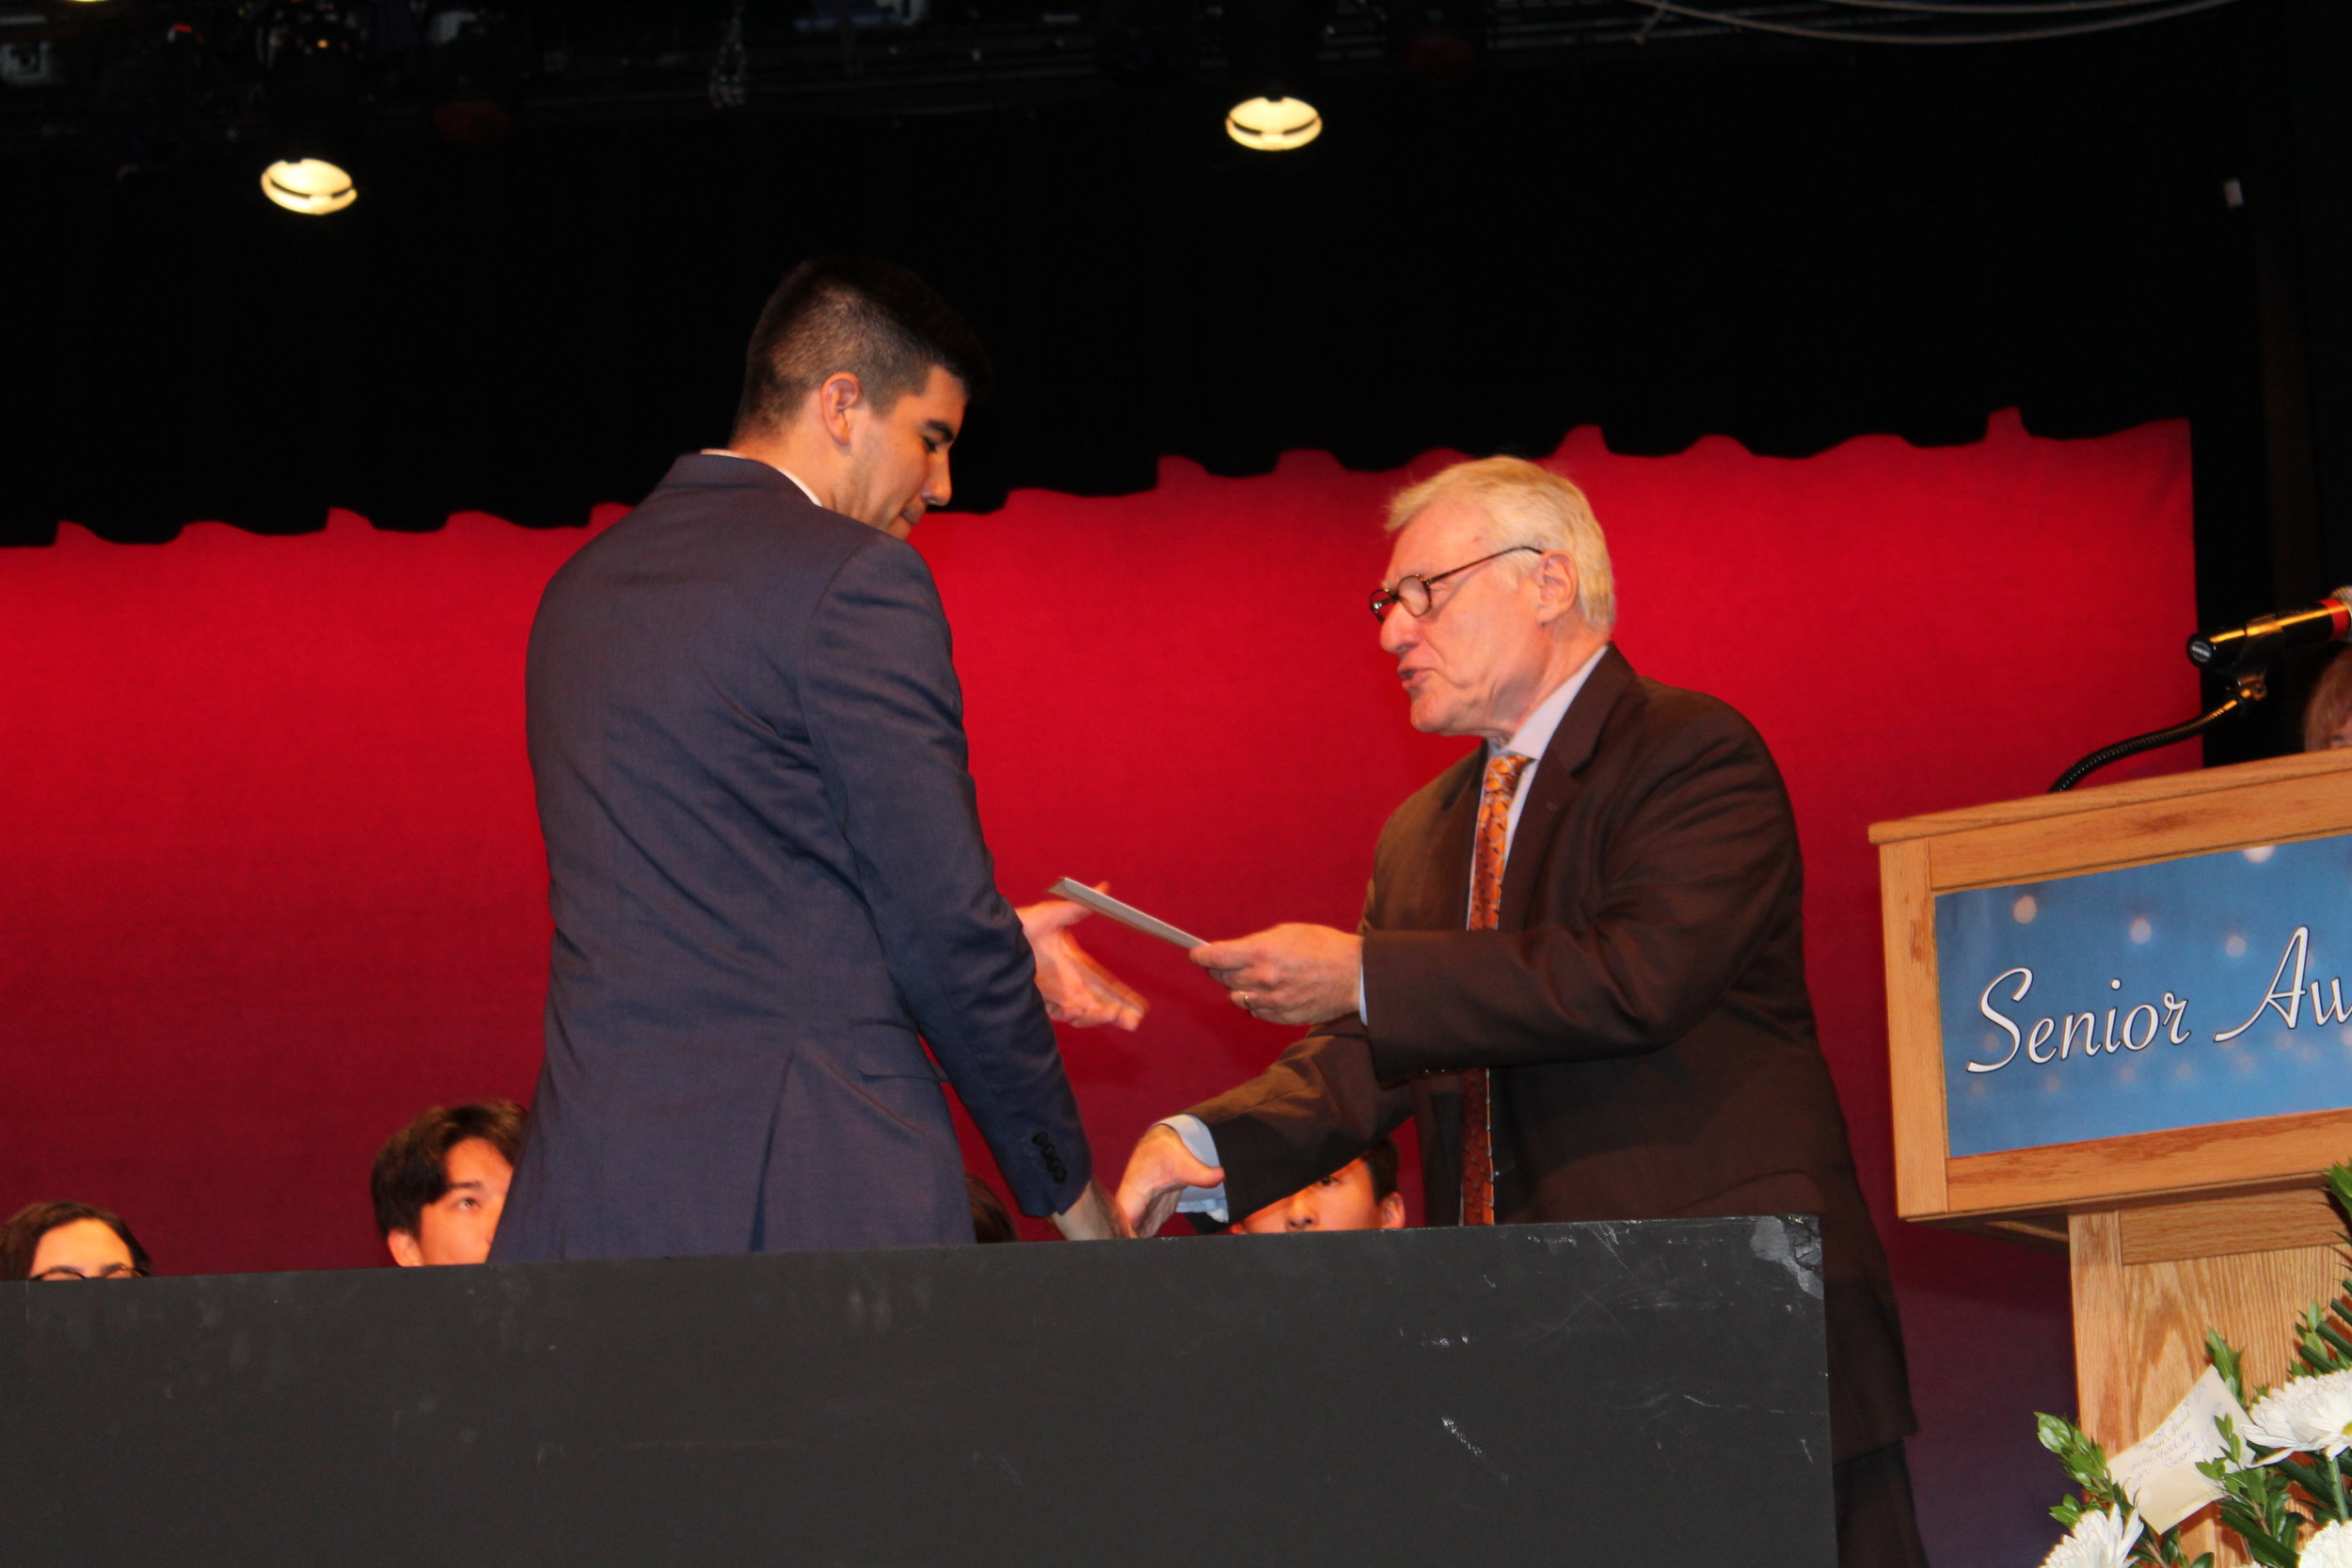 Al Faella hands scholarship to one of the six winners at the 2019 Governor Livingston High School Senior Awards Night.